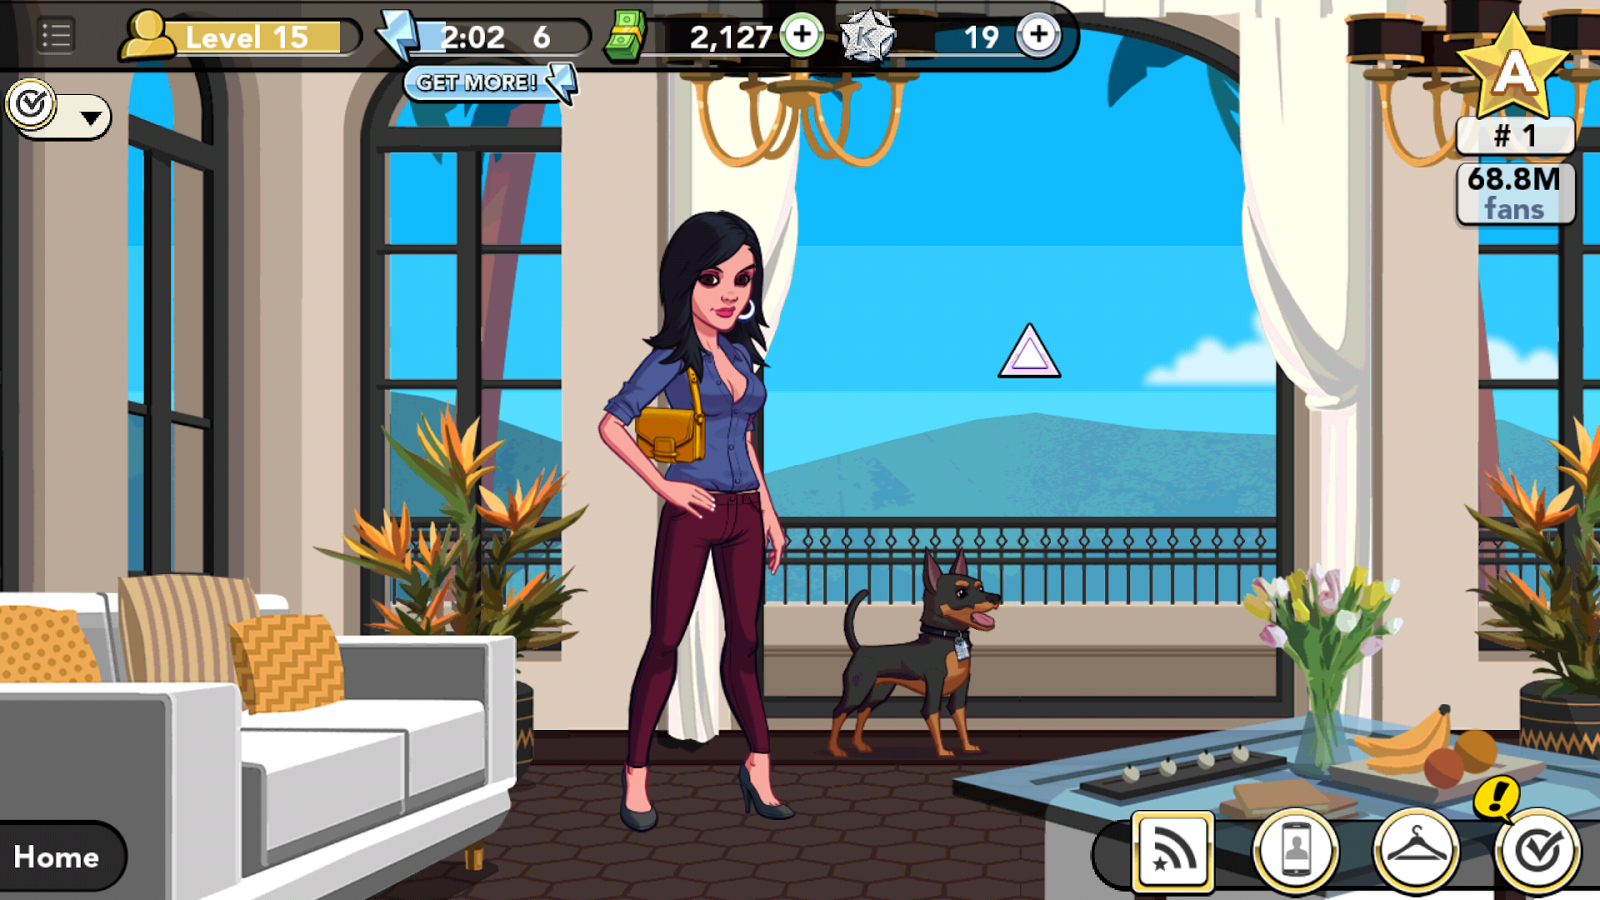 Kim Kardashian: Hollywood game - Miami beach house with Miniature Pinscher pet